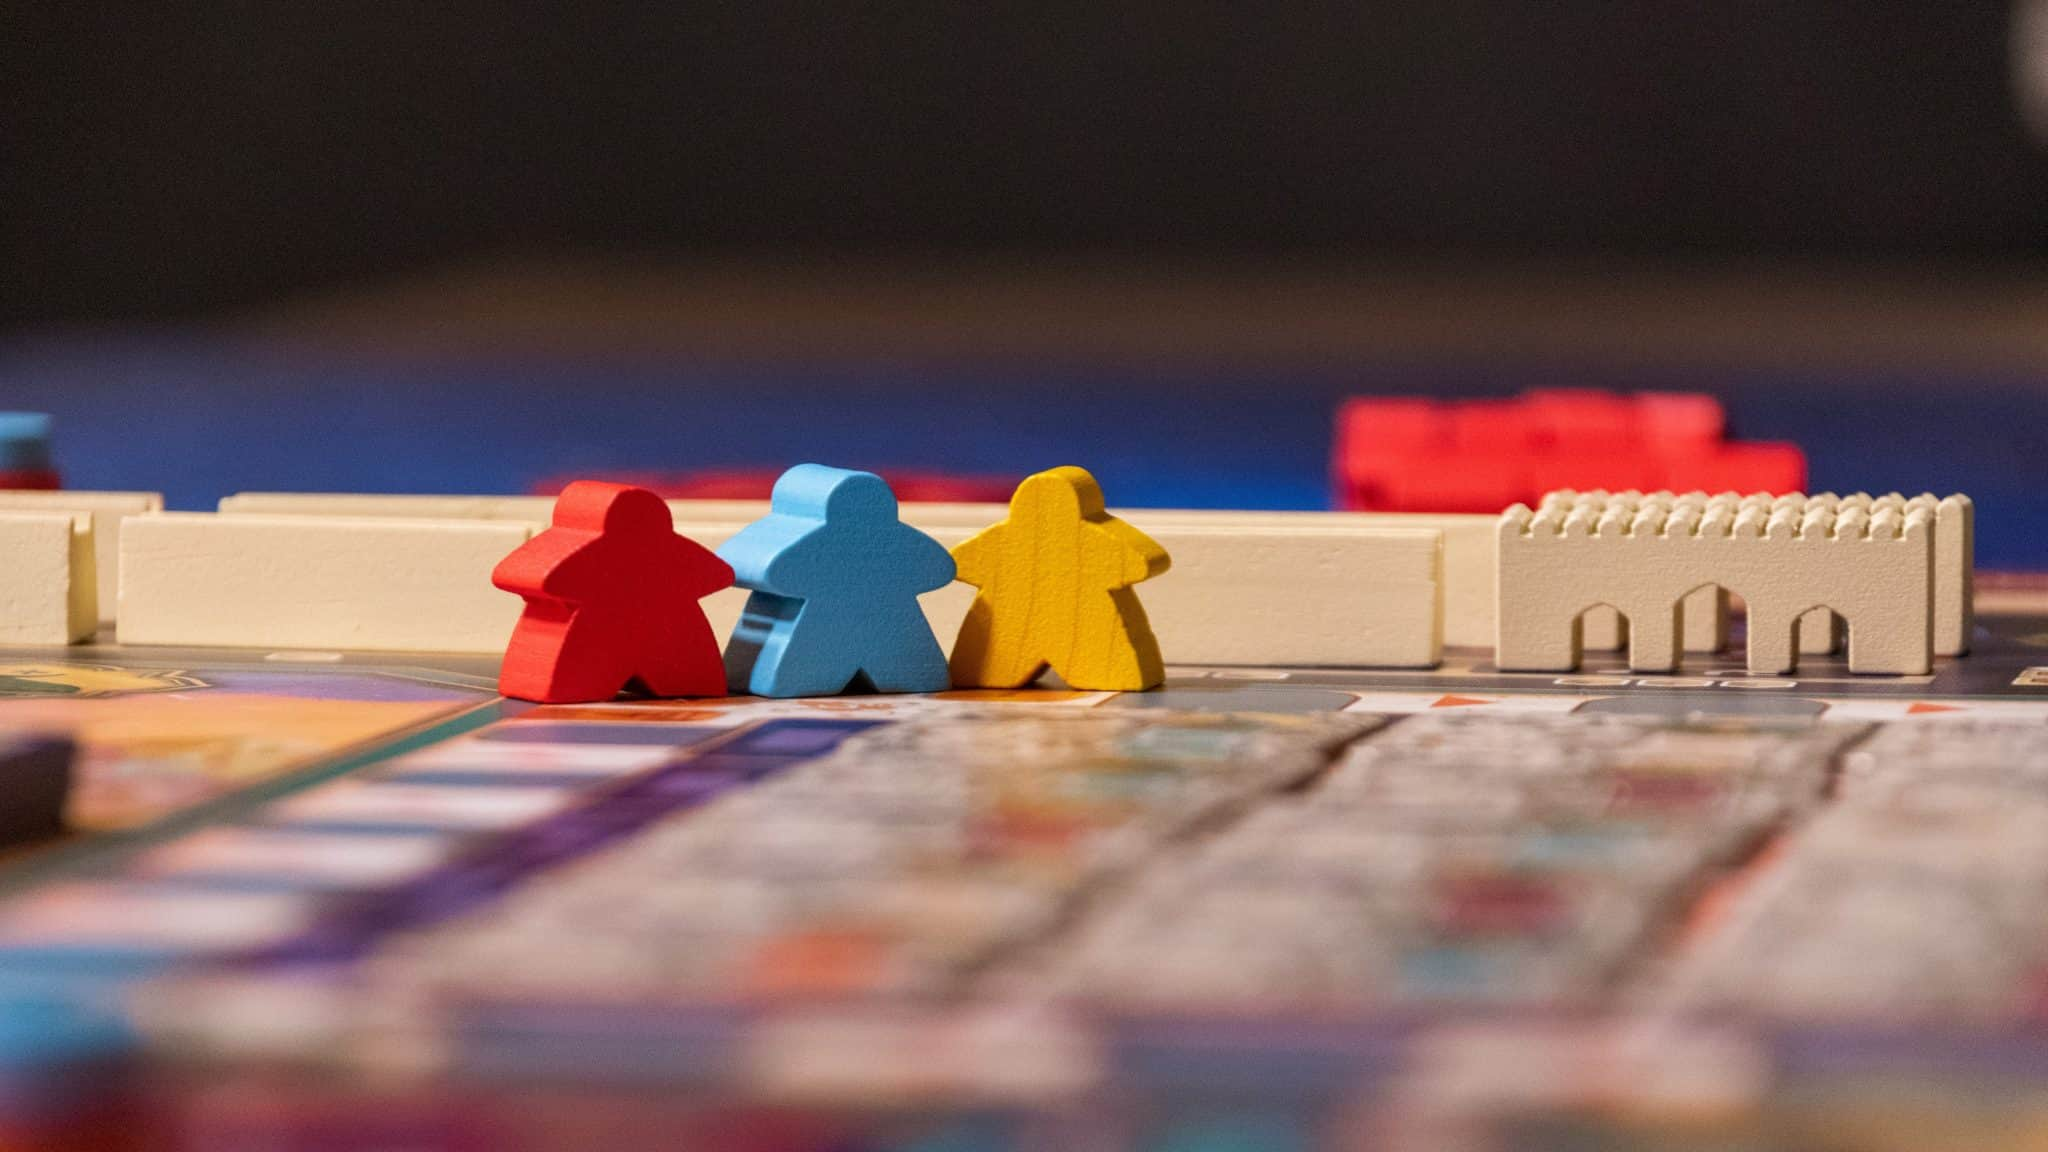 board game with multi-coloured wooden character pieces